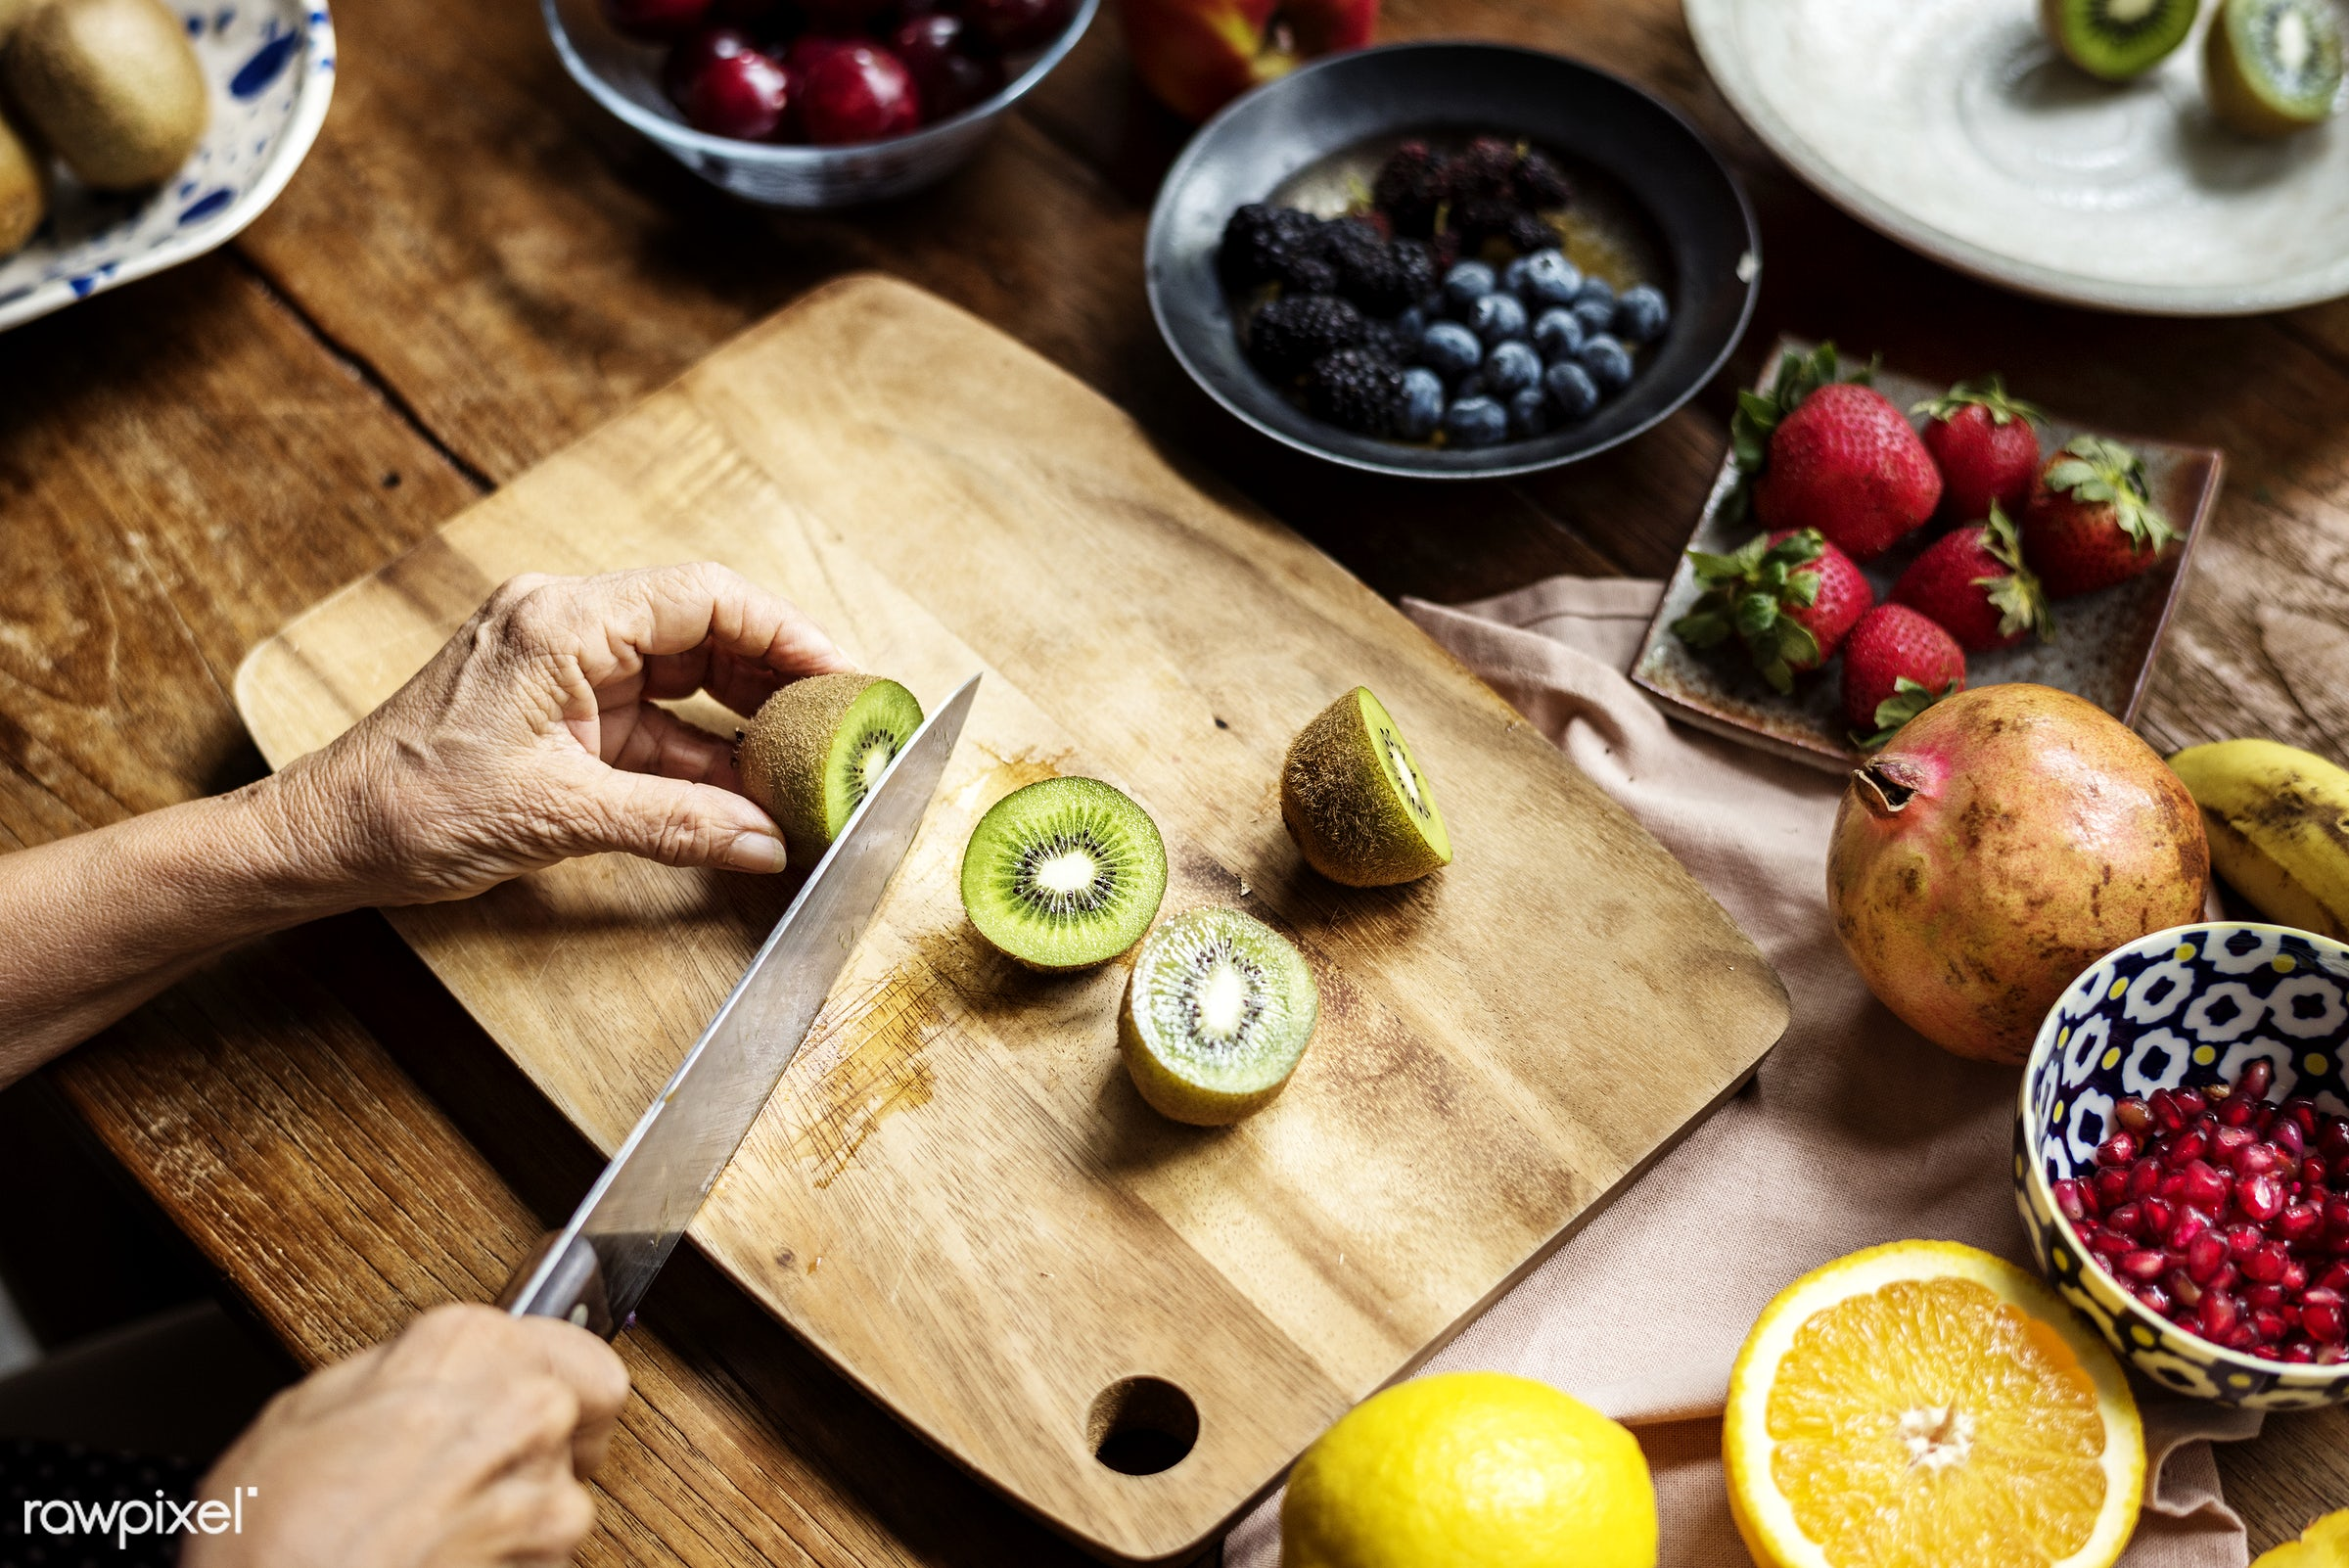 diverse, real, hands, fresh, kiwi, various, closeup, meal, superfood, cut board, chopping, fruits, prepare, cutting, board,...